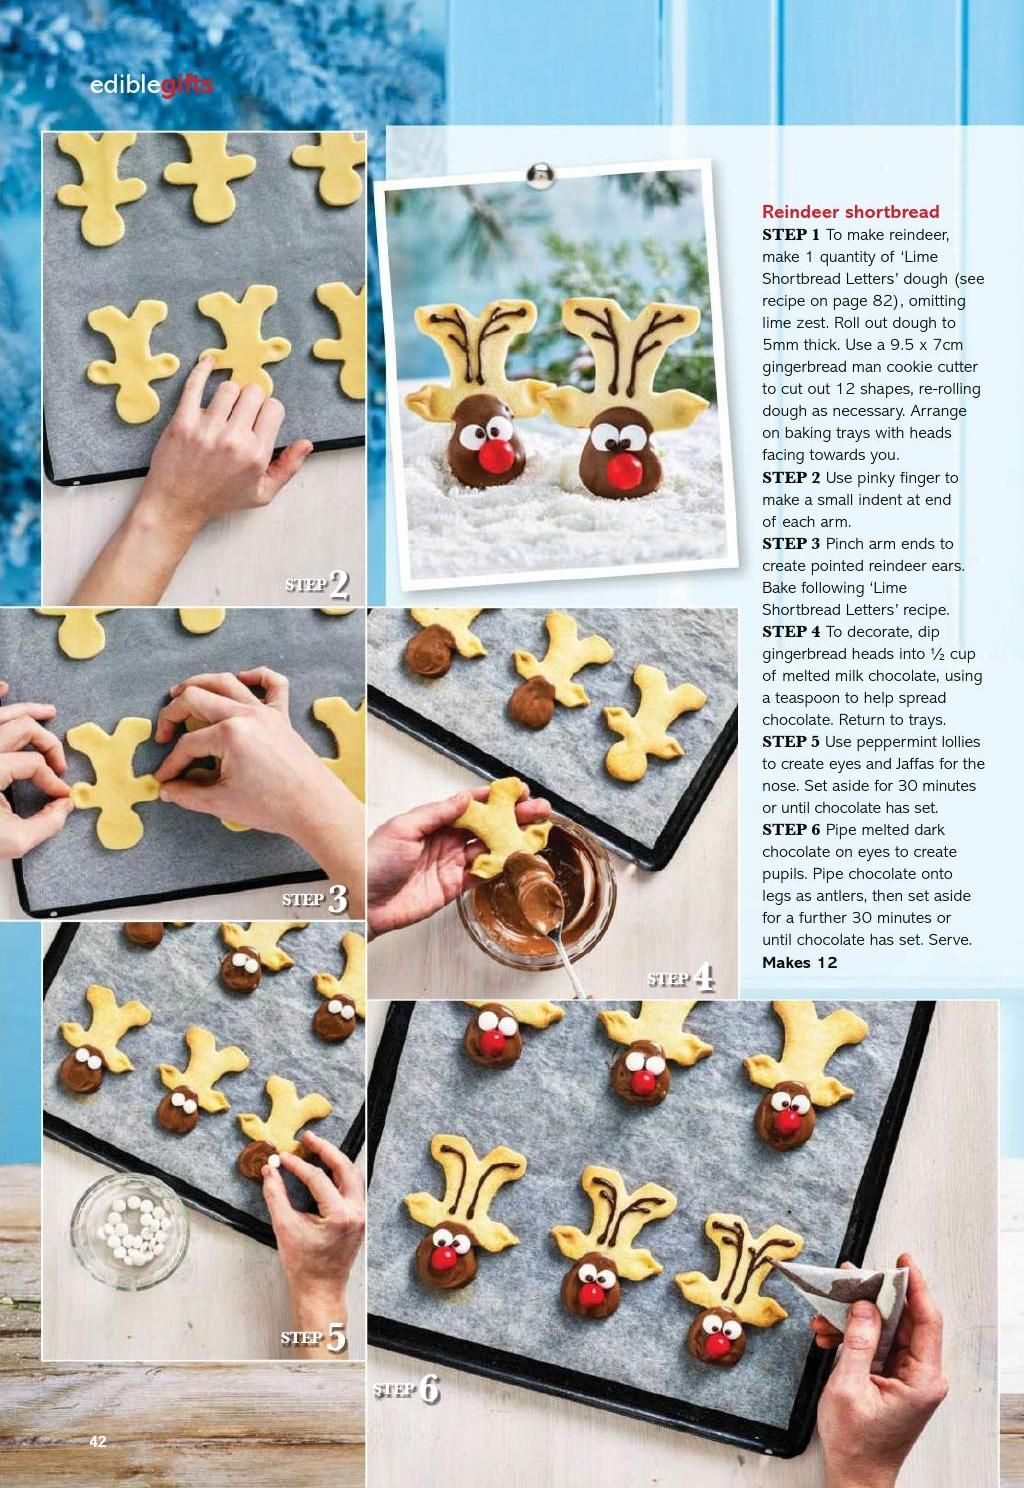 0ba2e57bae3f931224f27da6b6dc3865 - Better Homes And Gardens Christmas Cookies Magazine 2015